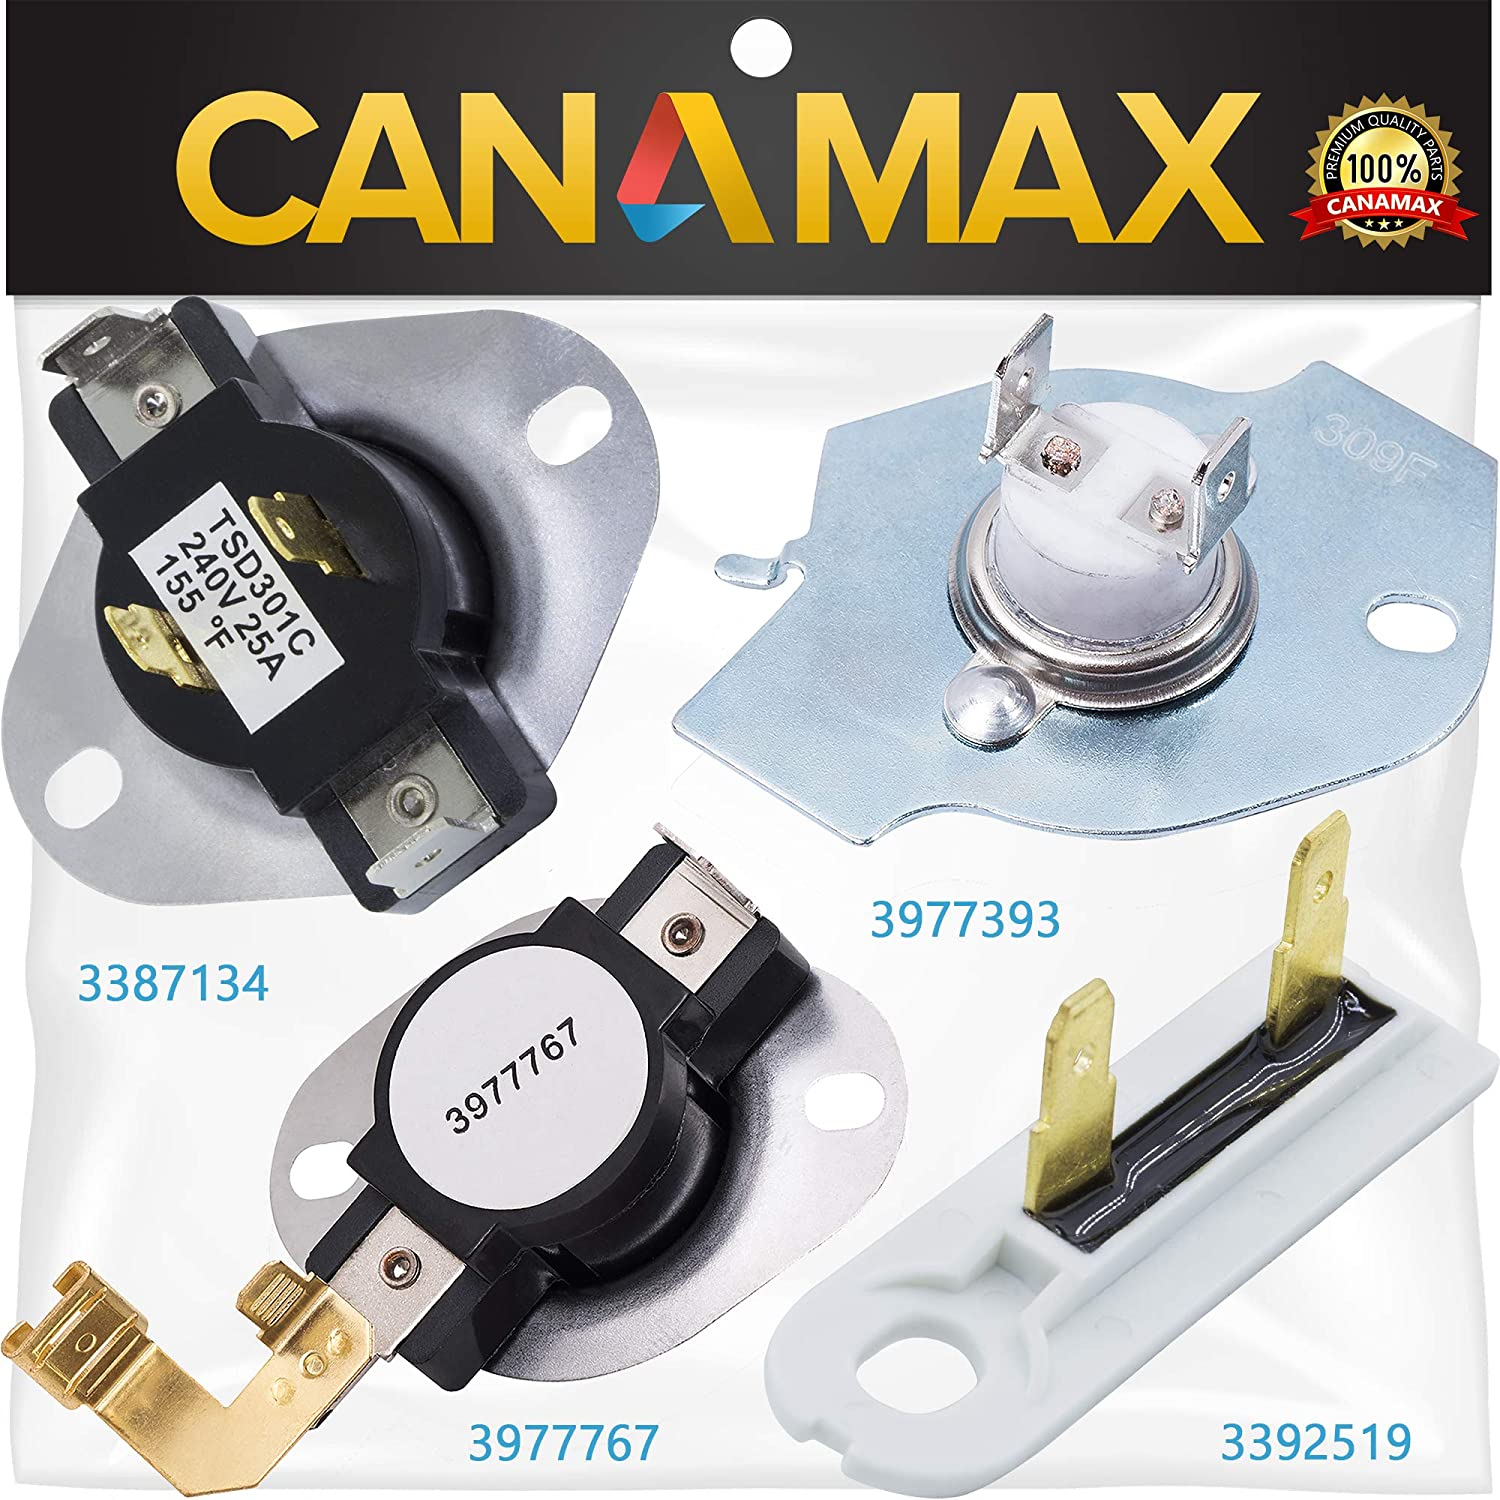 3977393 & 3977767 & 3392519 & 3387134 Dryer Thermal Fuse & High-Limit Thermostat COMPLETE Kit Premium Replacement by Canamax - Exact Fit with Whirlpool Kenmore Maytag Dryers